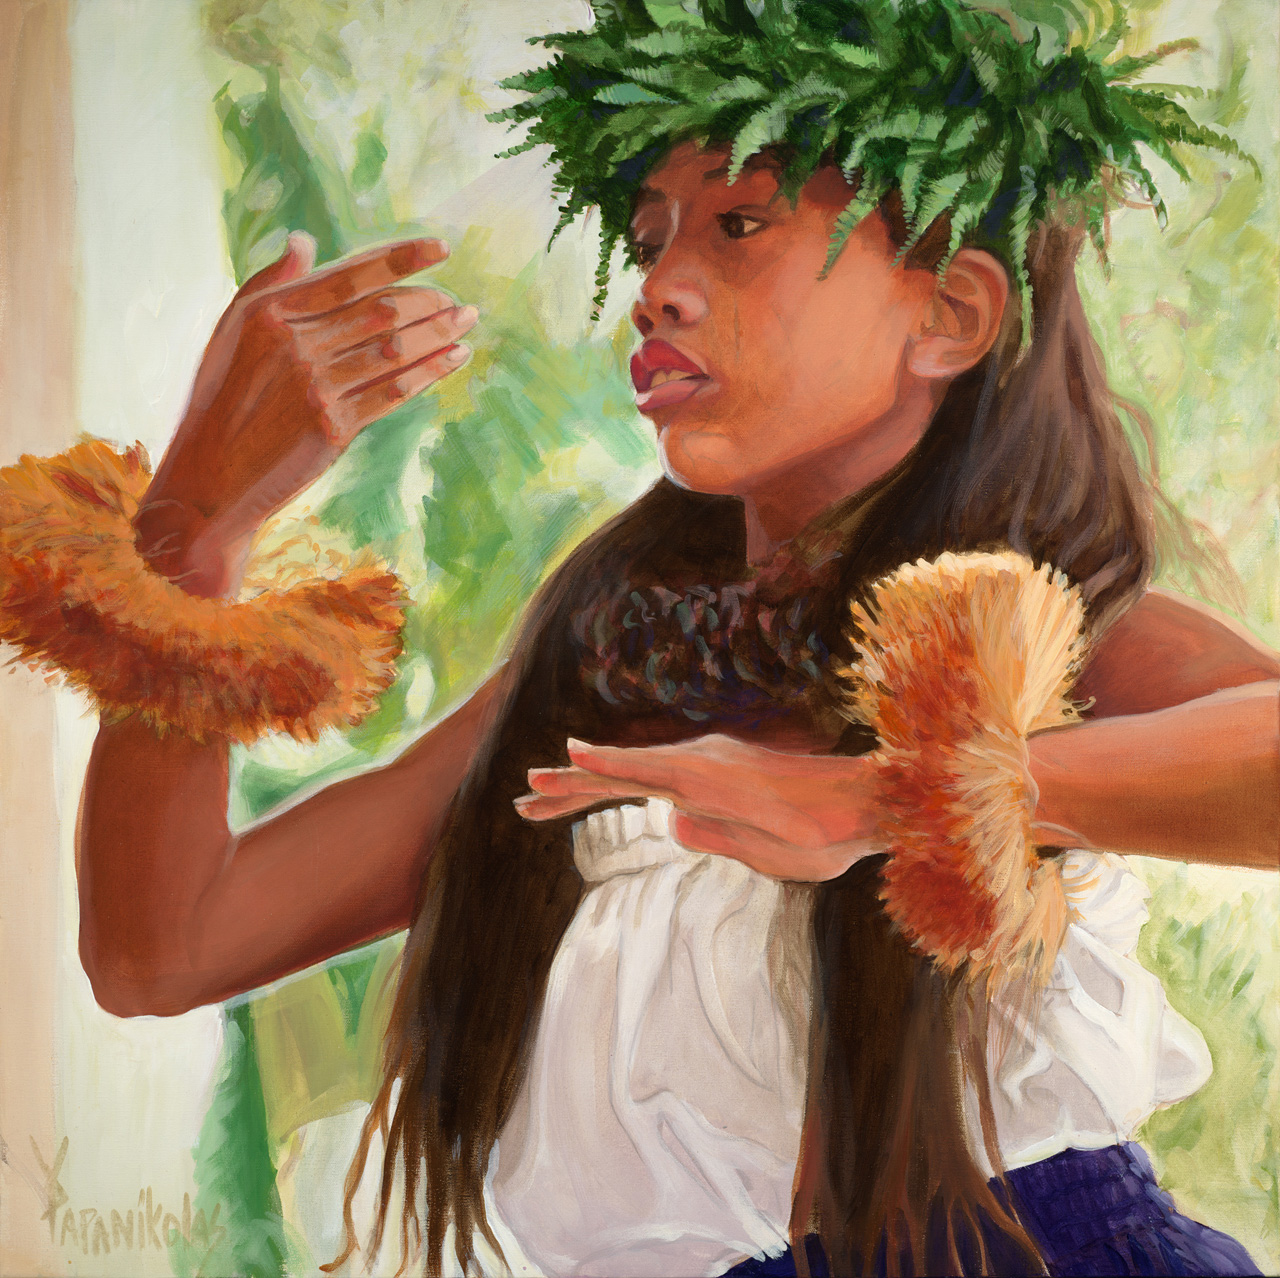 A young hula dancer in motion with a ti leaf head piece, and purple hula skirt